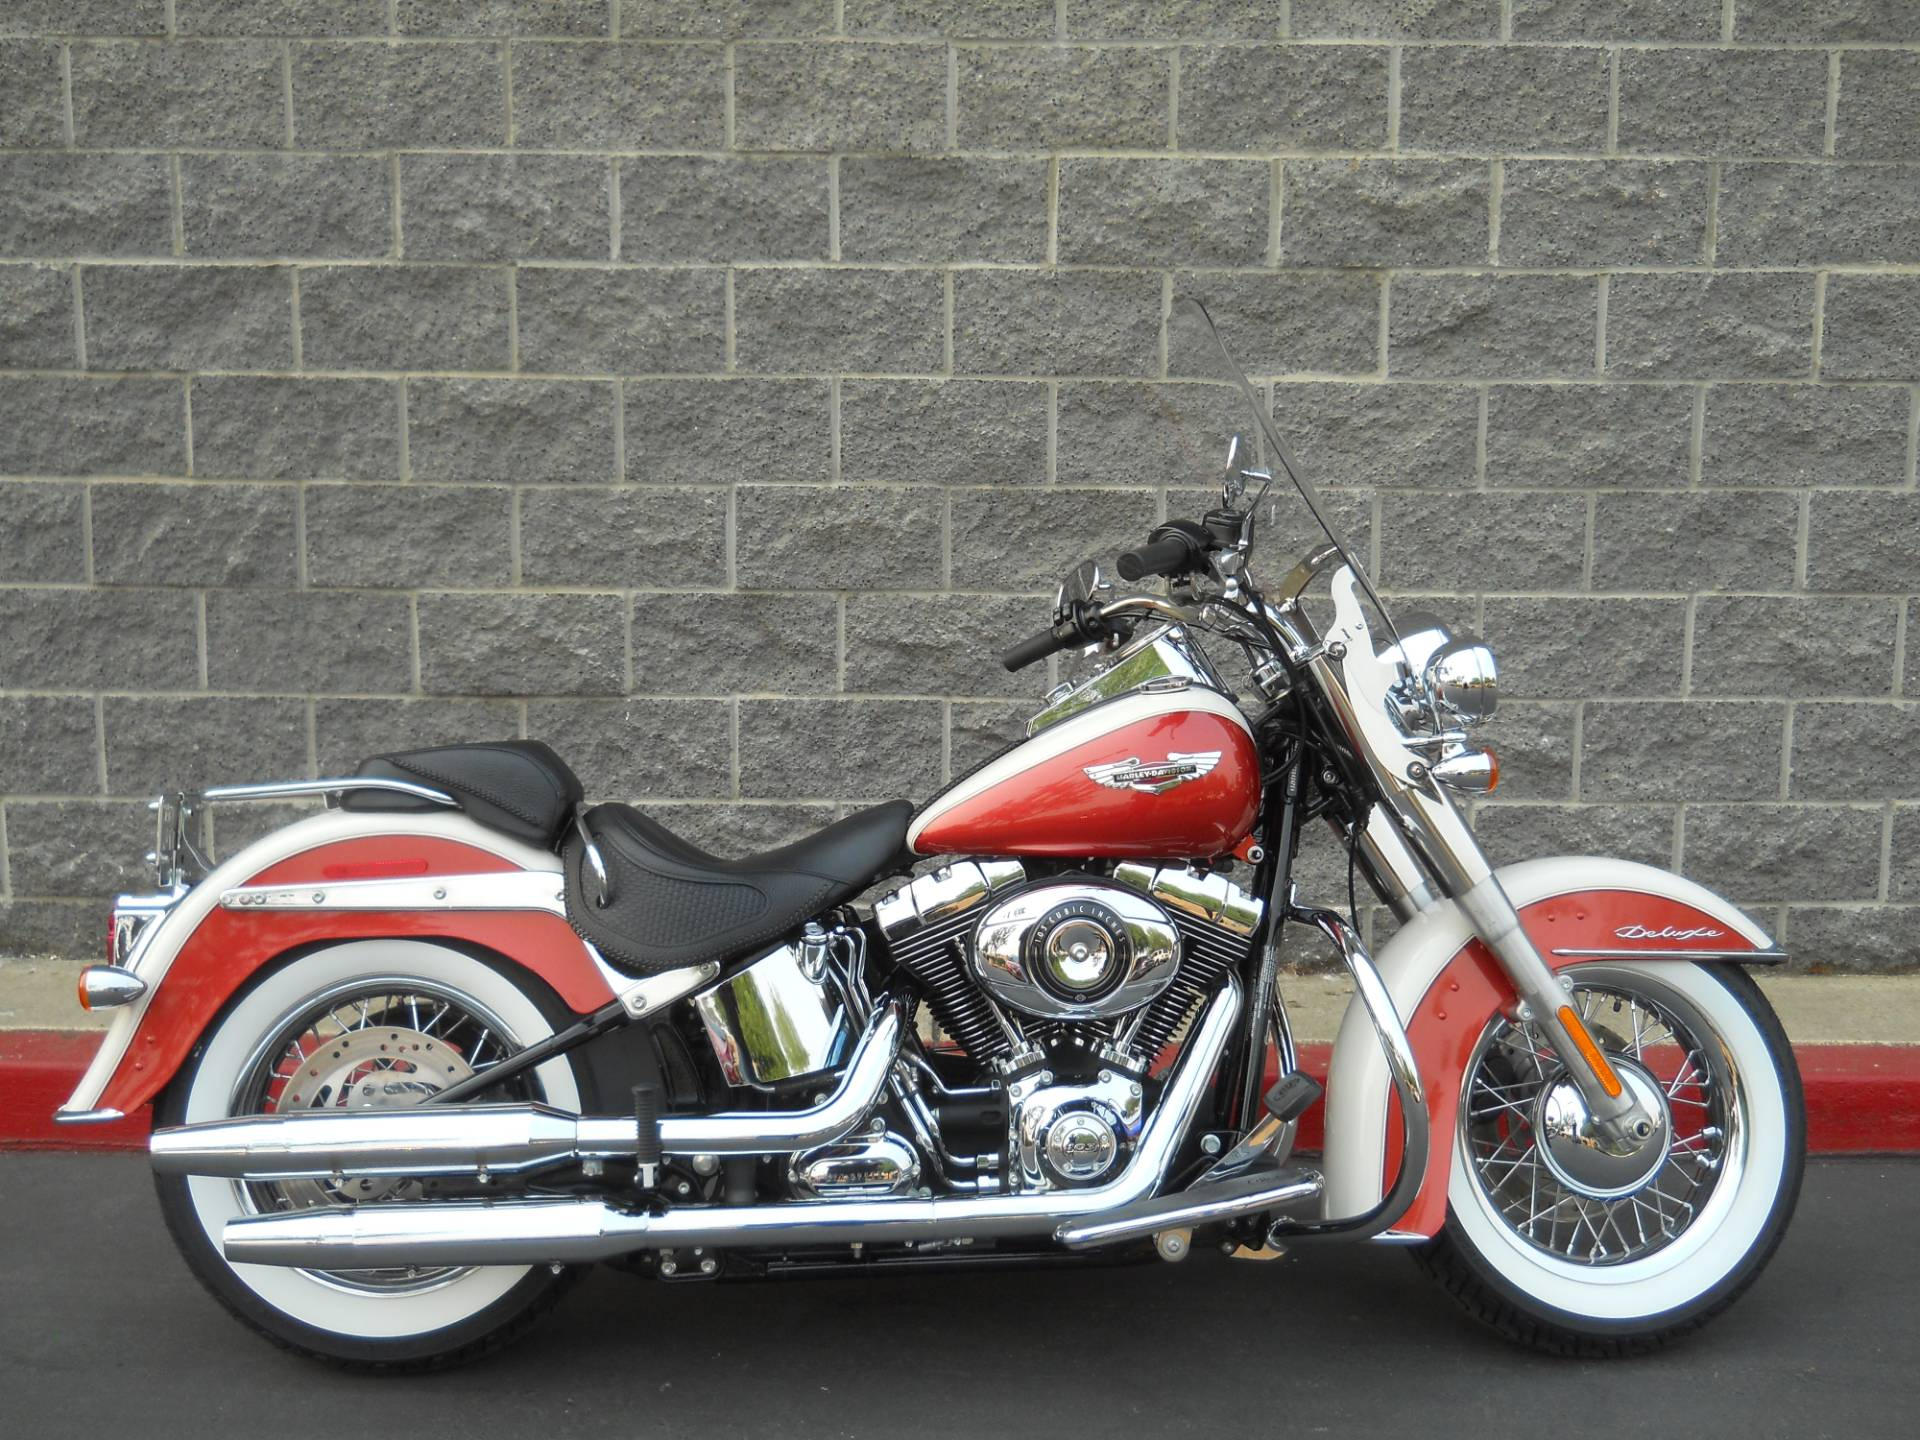 2012 Harley-Davidson Softail® Deluxe in Livermore, California - Photo 1